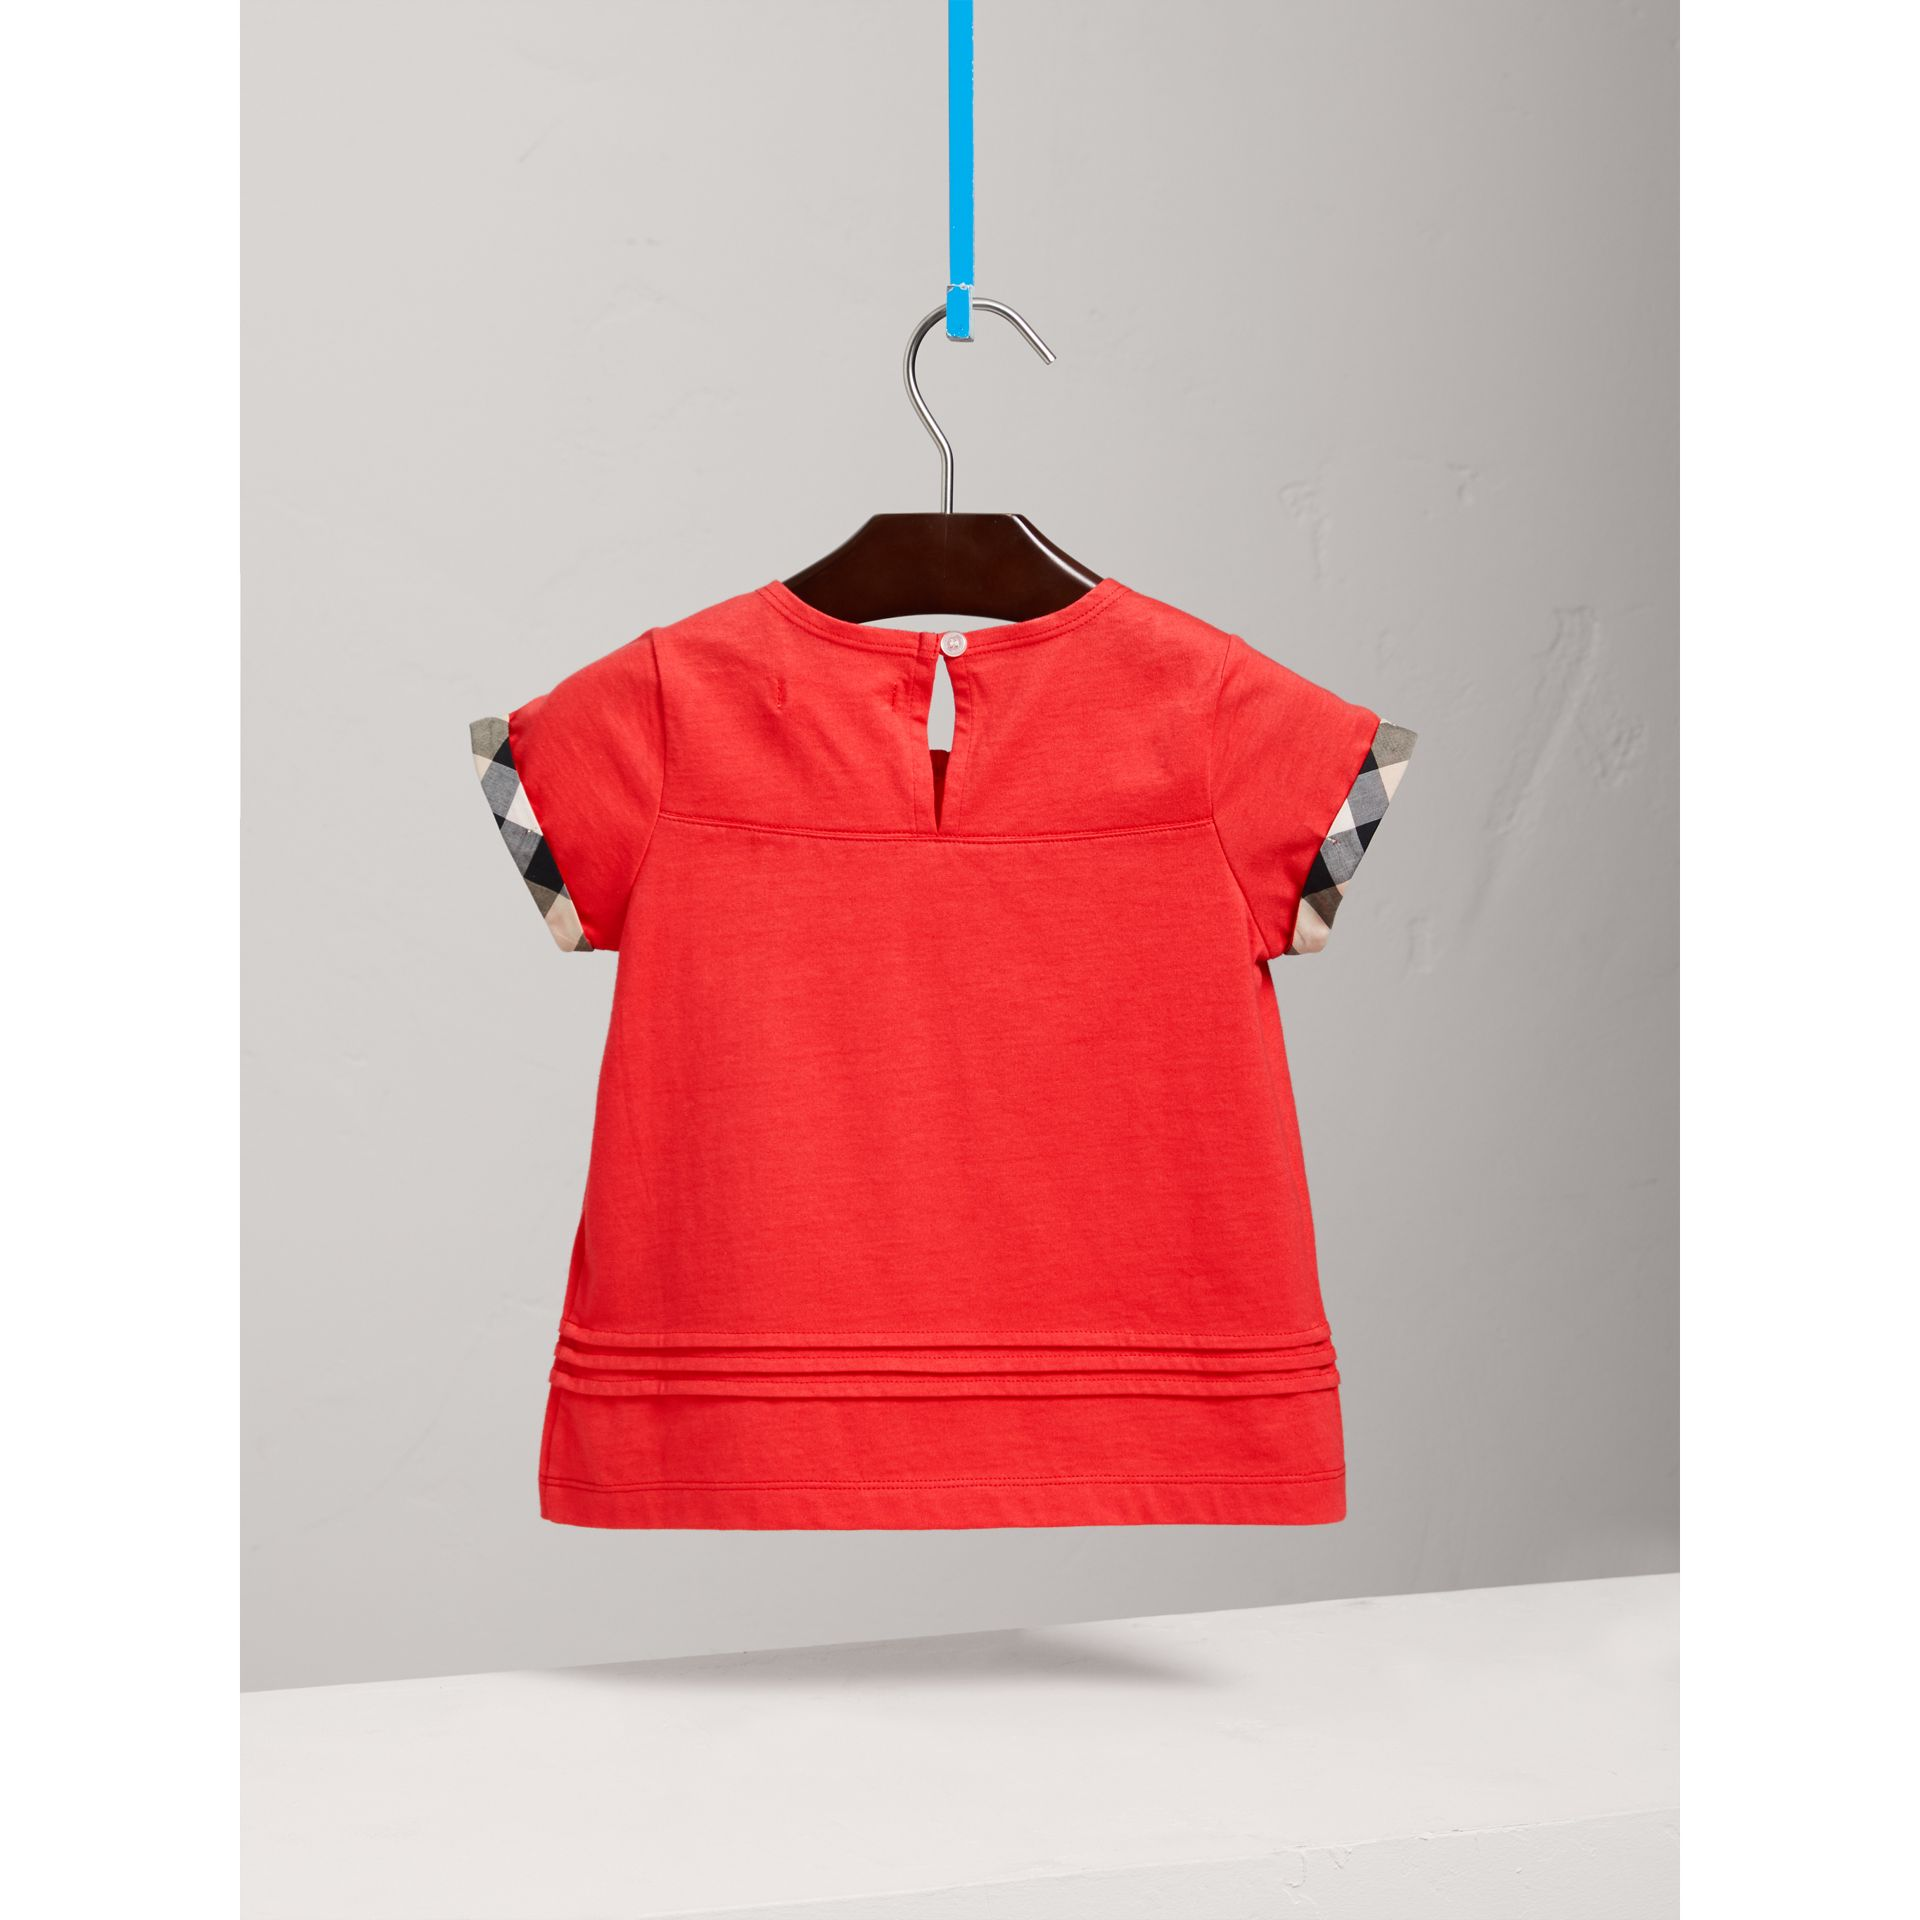 Pleat and Check Detail Cotton T-shirt in Bright Orange Red | Burberry - gallery image 3